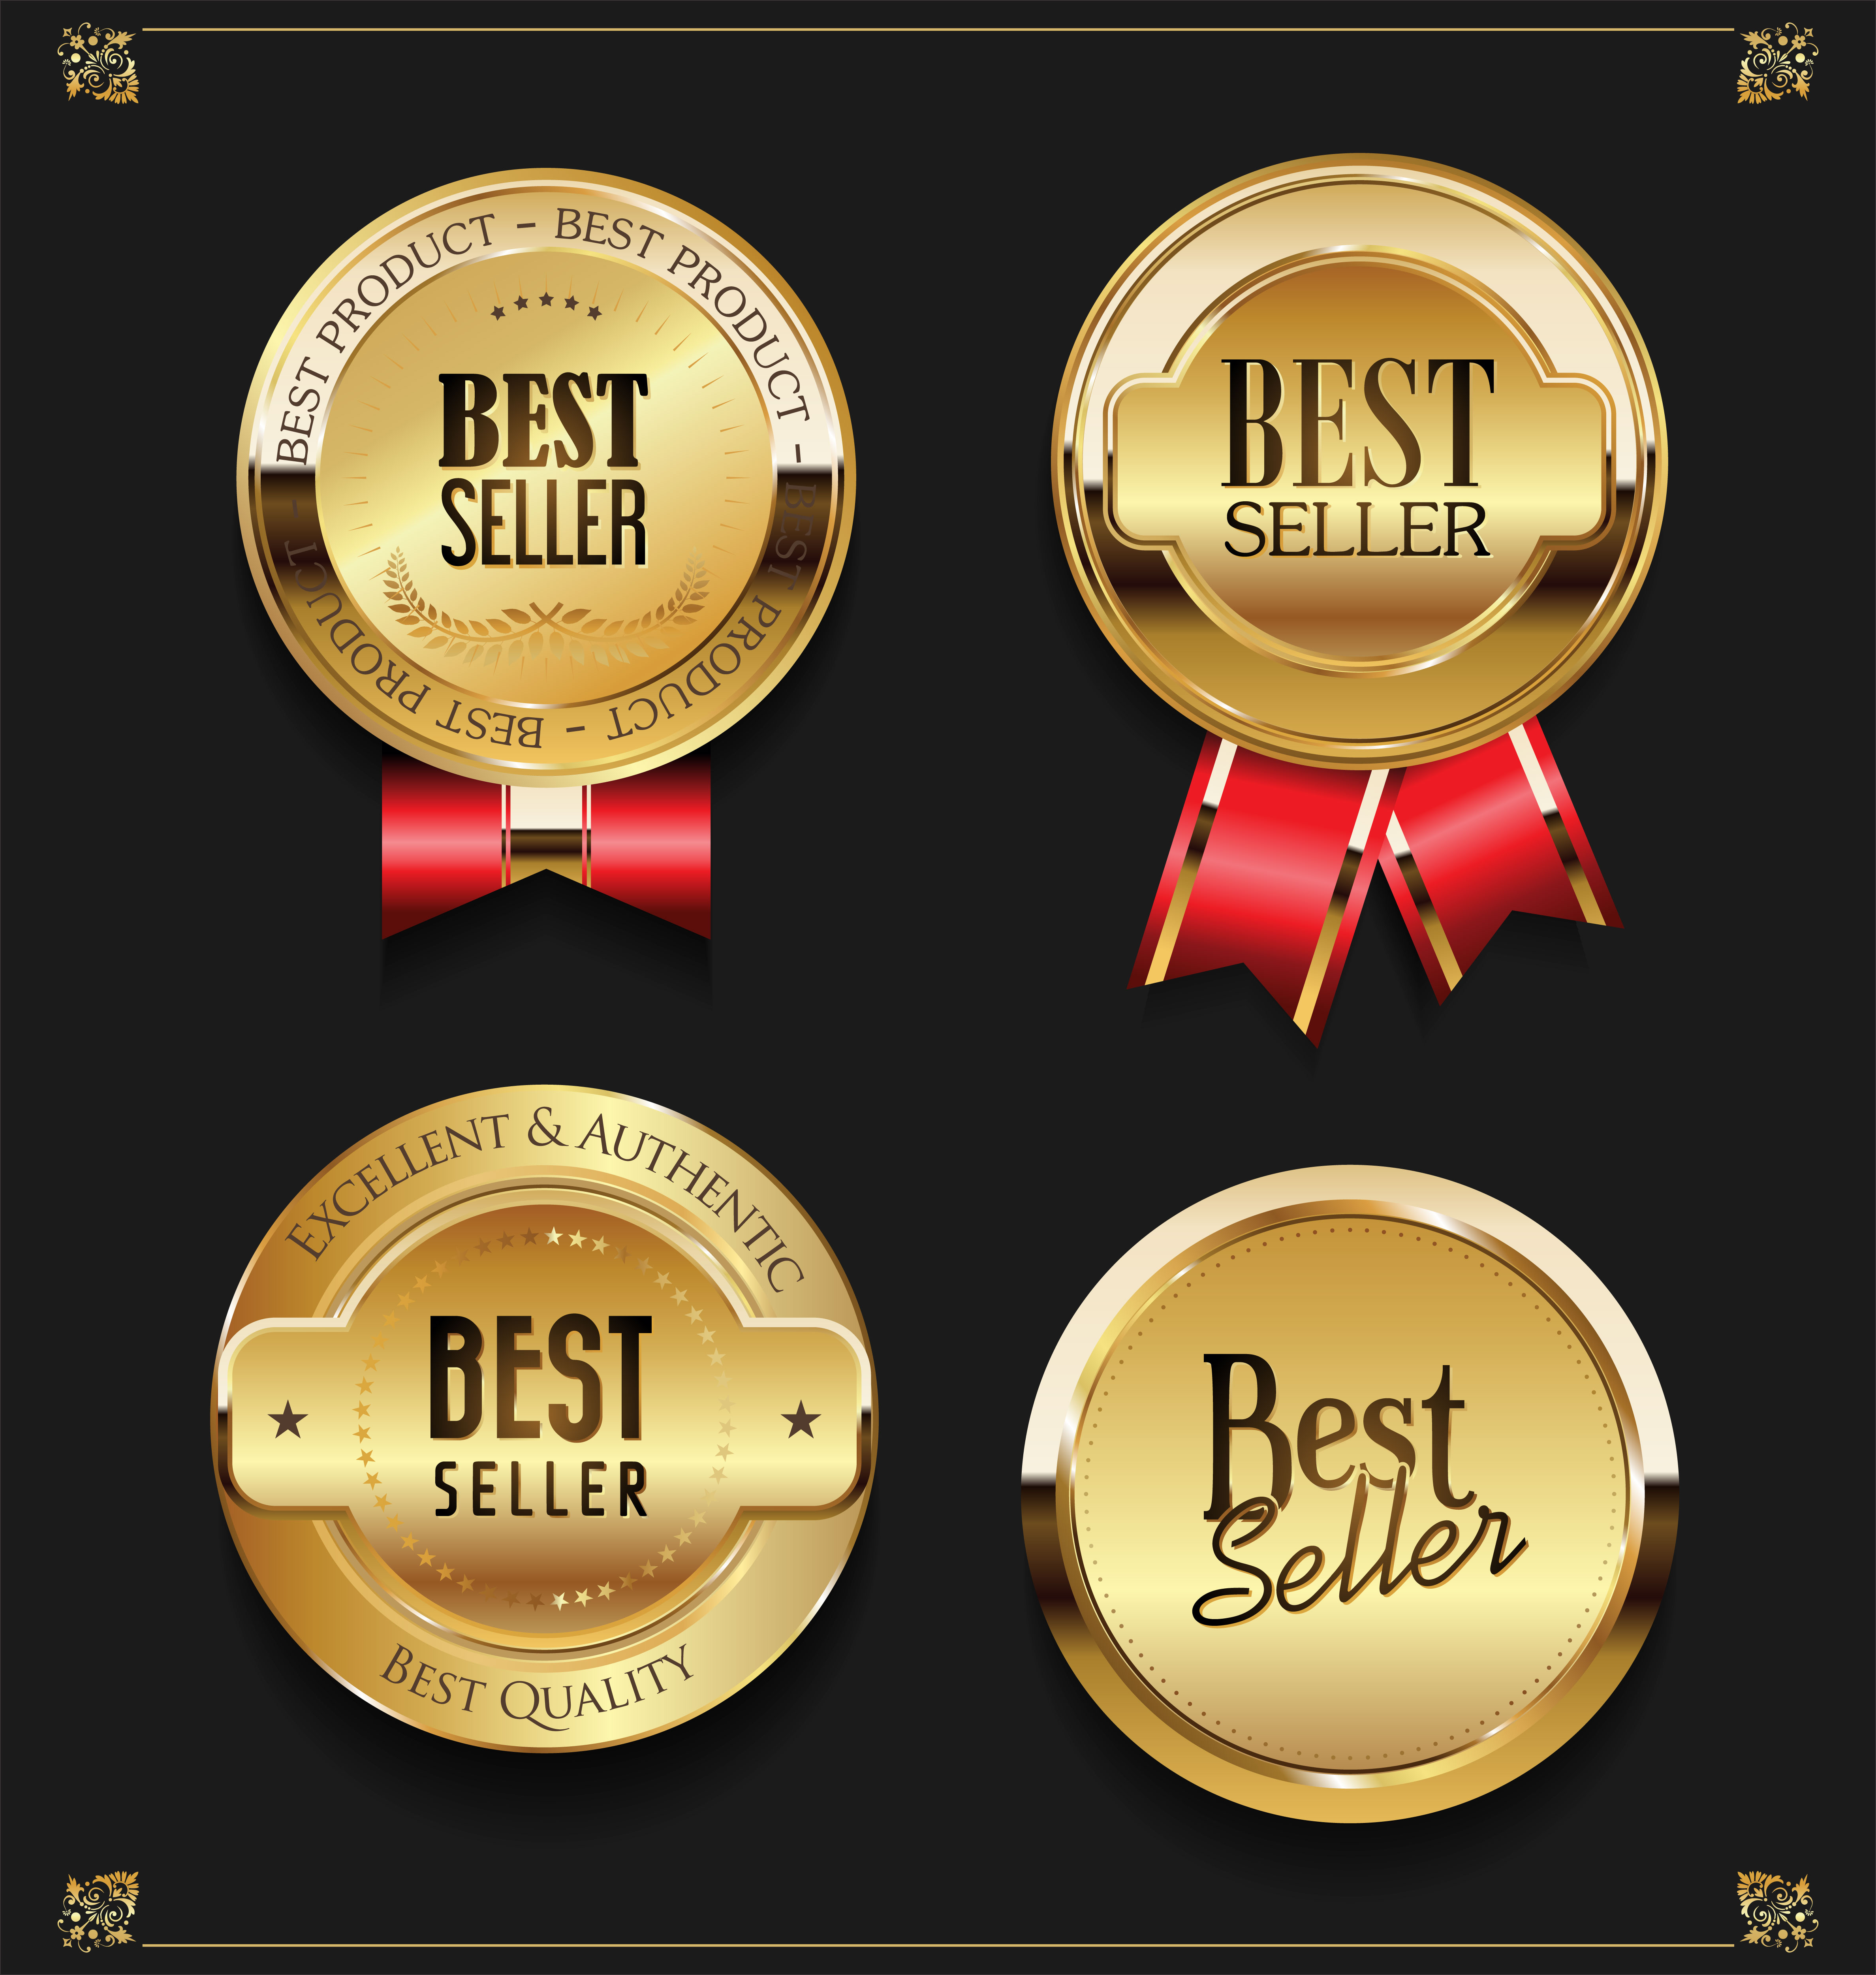 Premium Quality Badge And Banner Collection Vectors:  Collection Of Elegant Golden Premium Best Seller Labels